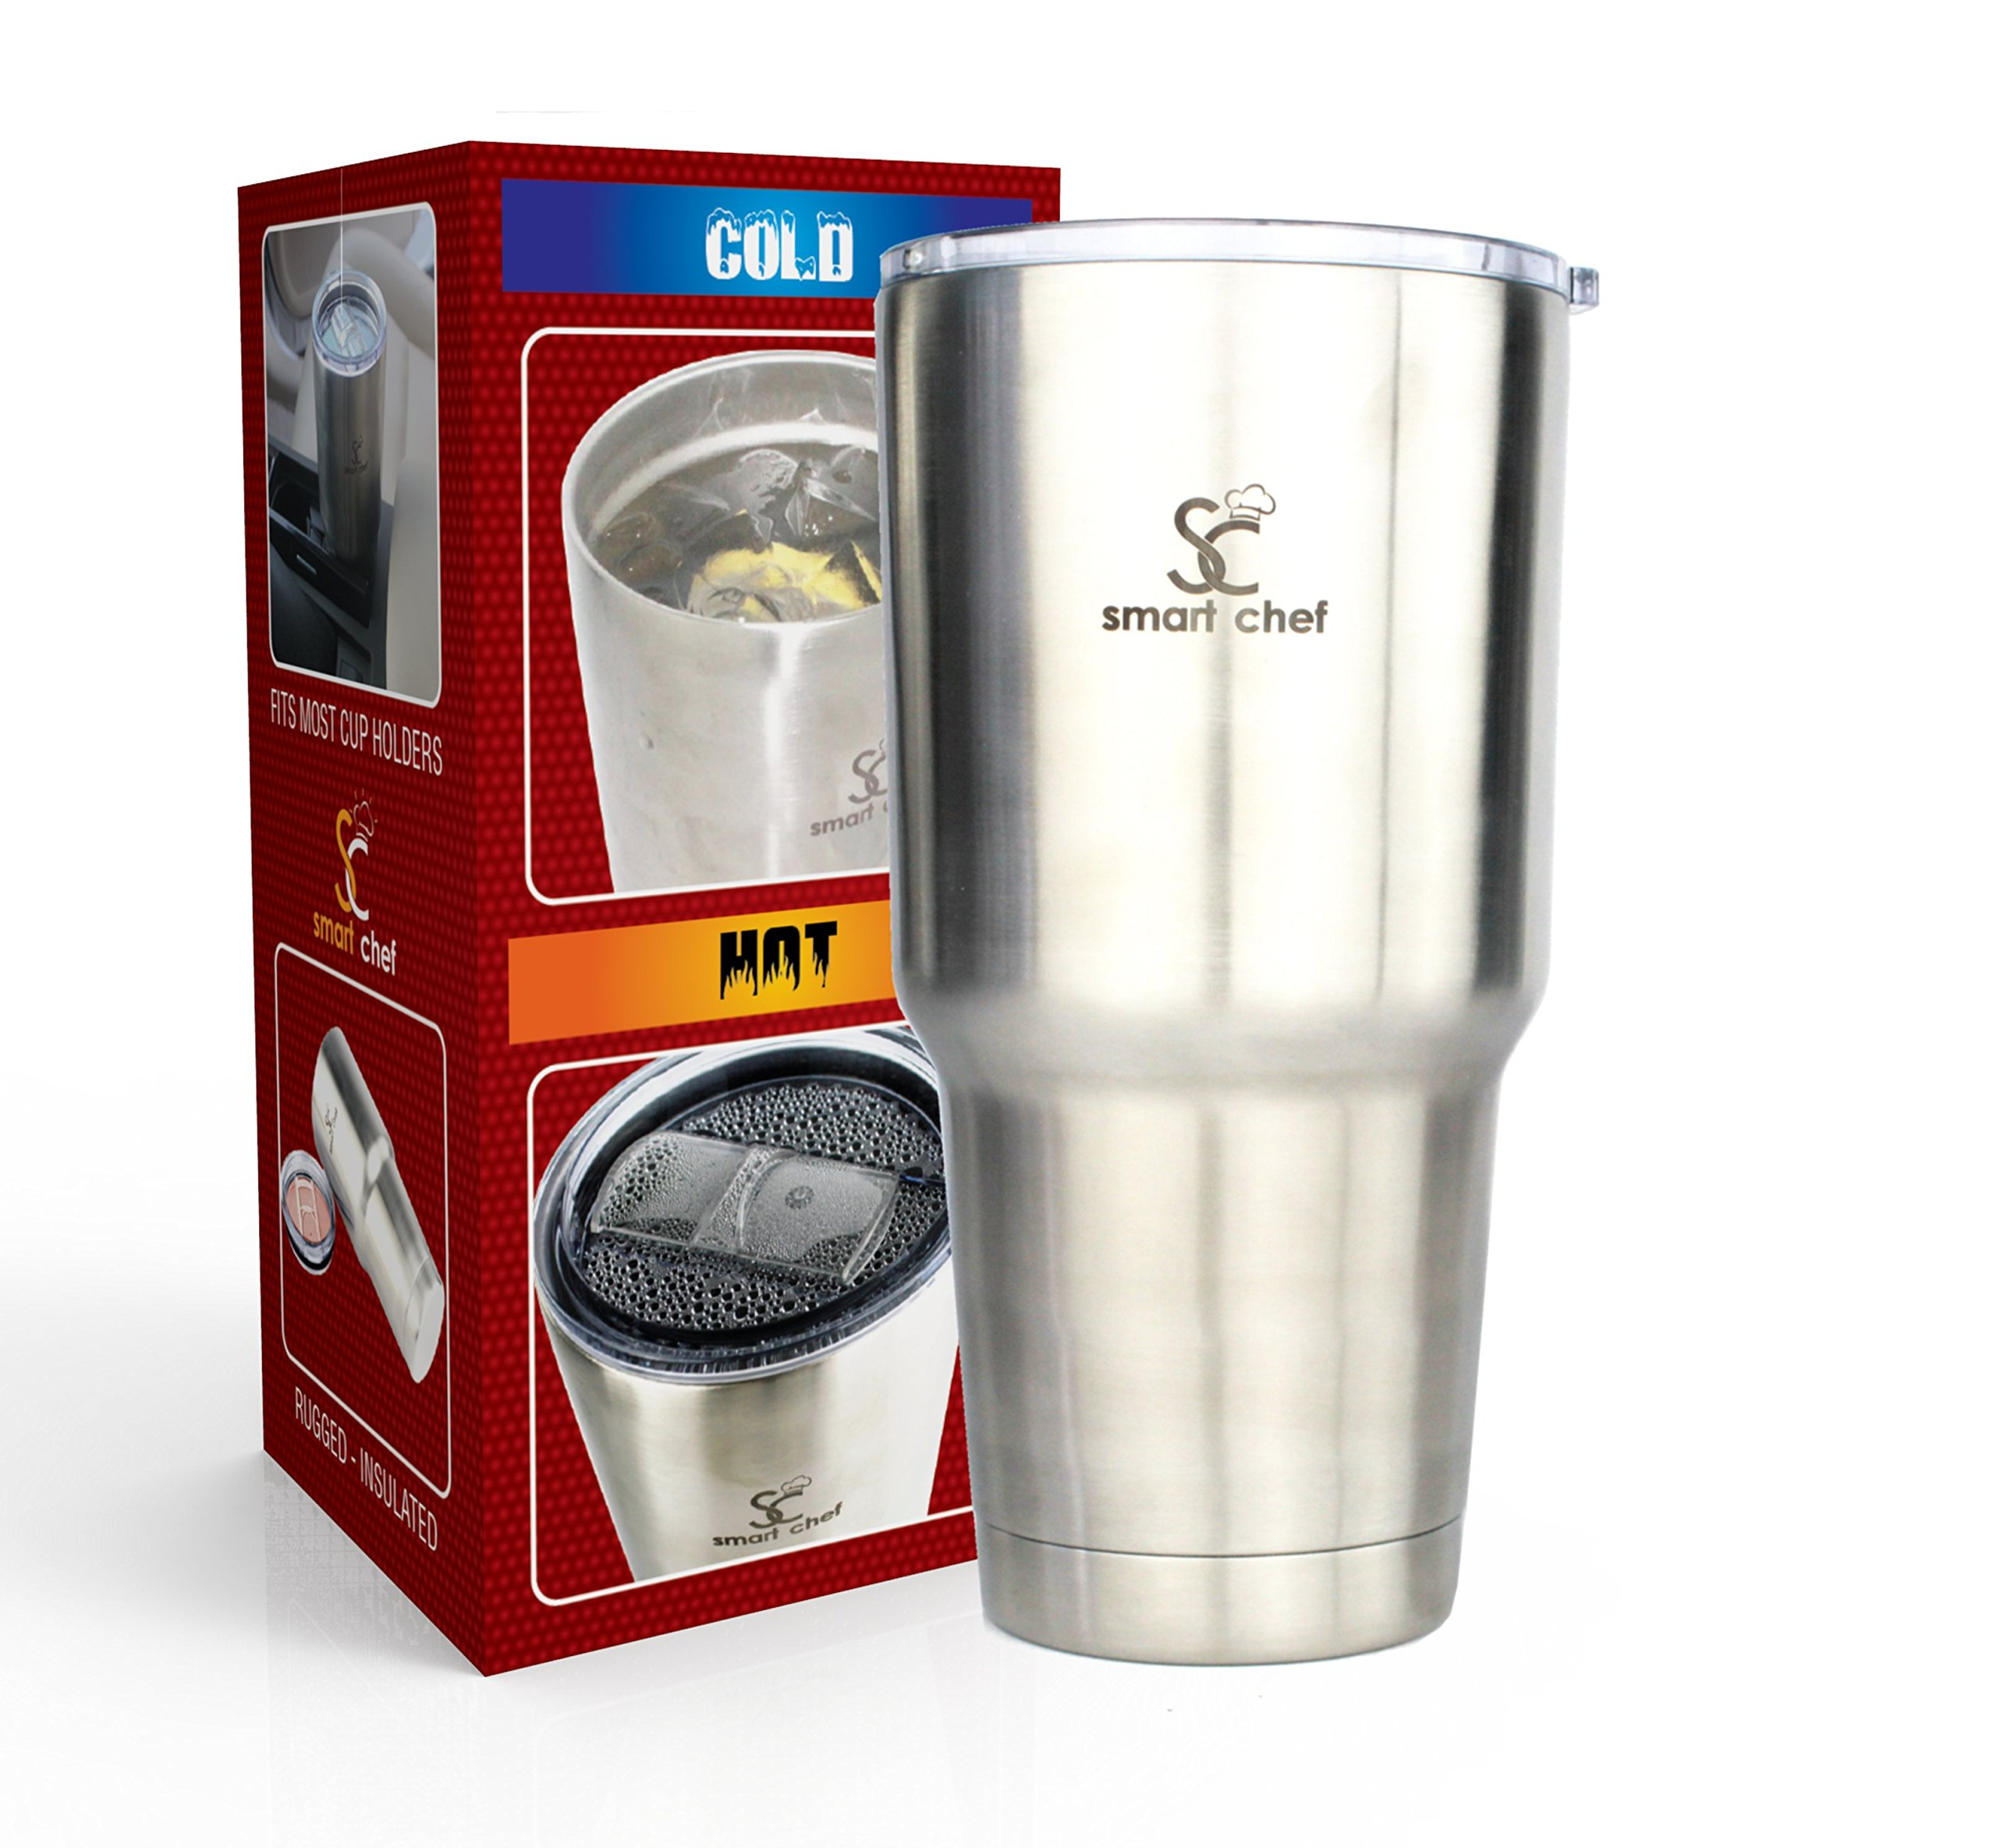 Stainless Steel Insulated Vacuum Tumbler 30 Oz - Enjoy Piping Hot Coffee All Day! Advanced Vacuum Keeps Constant Temp for Hours - Great for Cold Drinks - Fits Most Cup Holders - Stylish & Durable